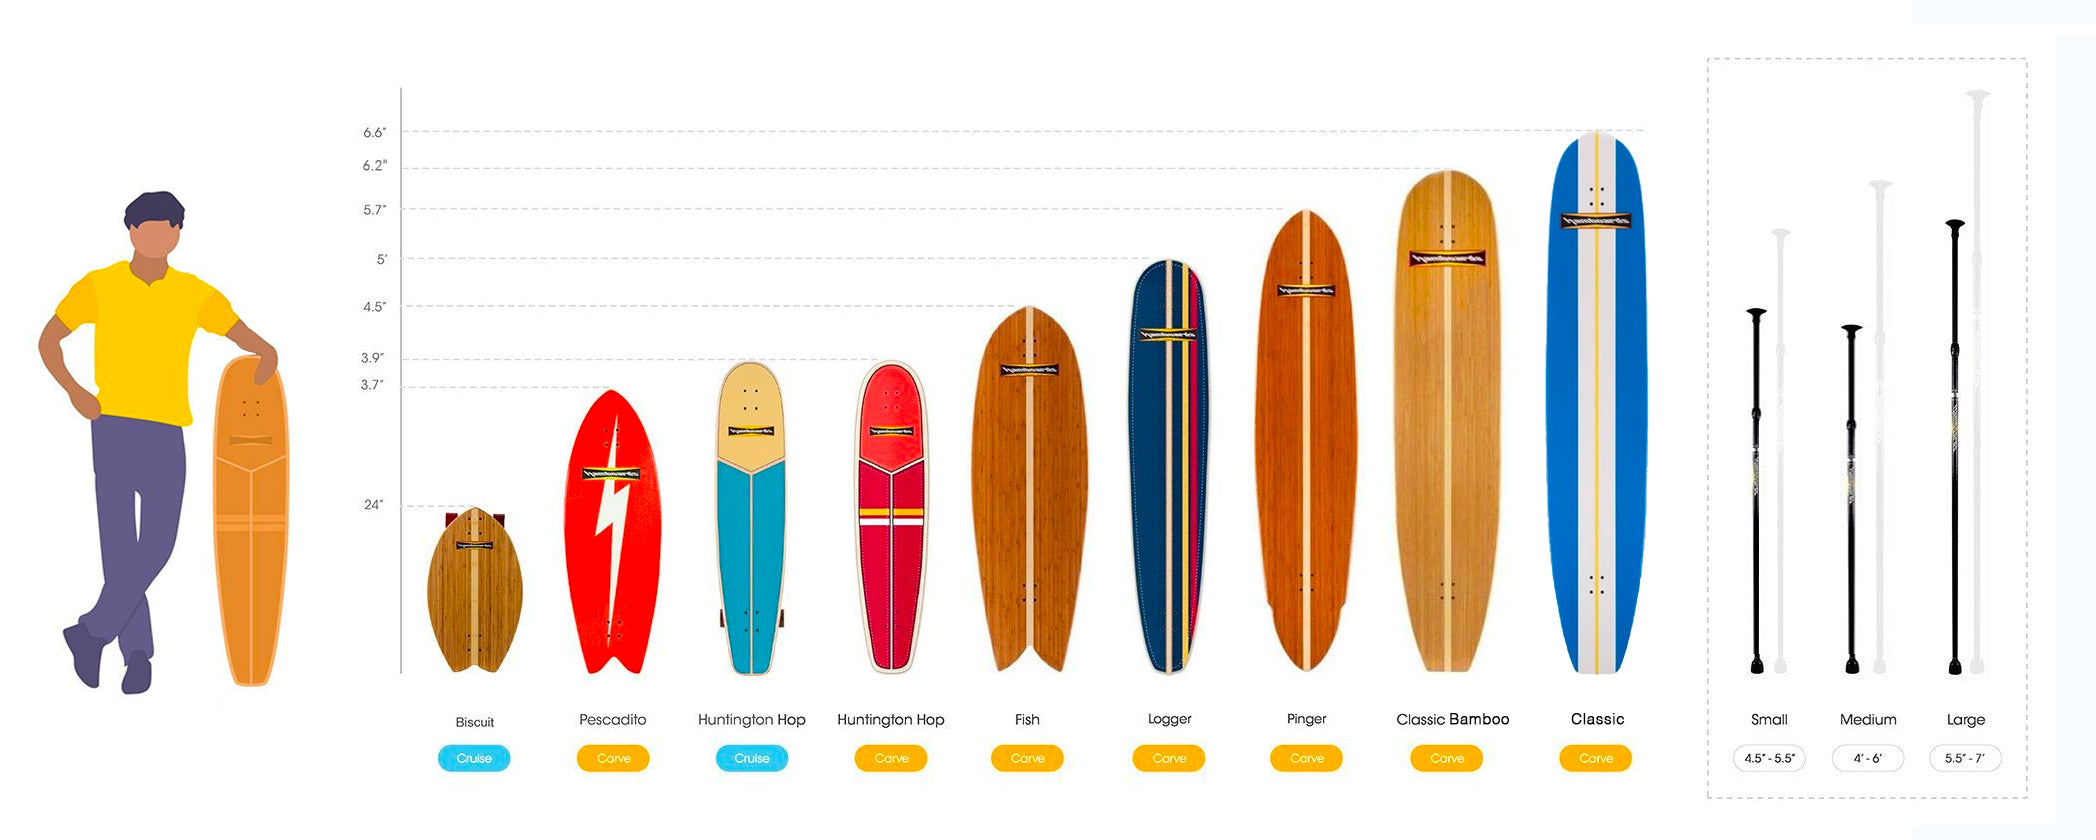 How to choose your Hamboard